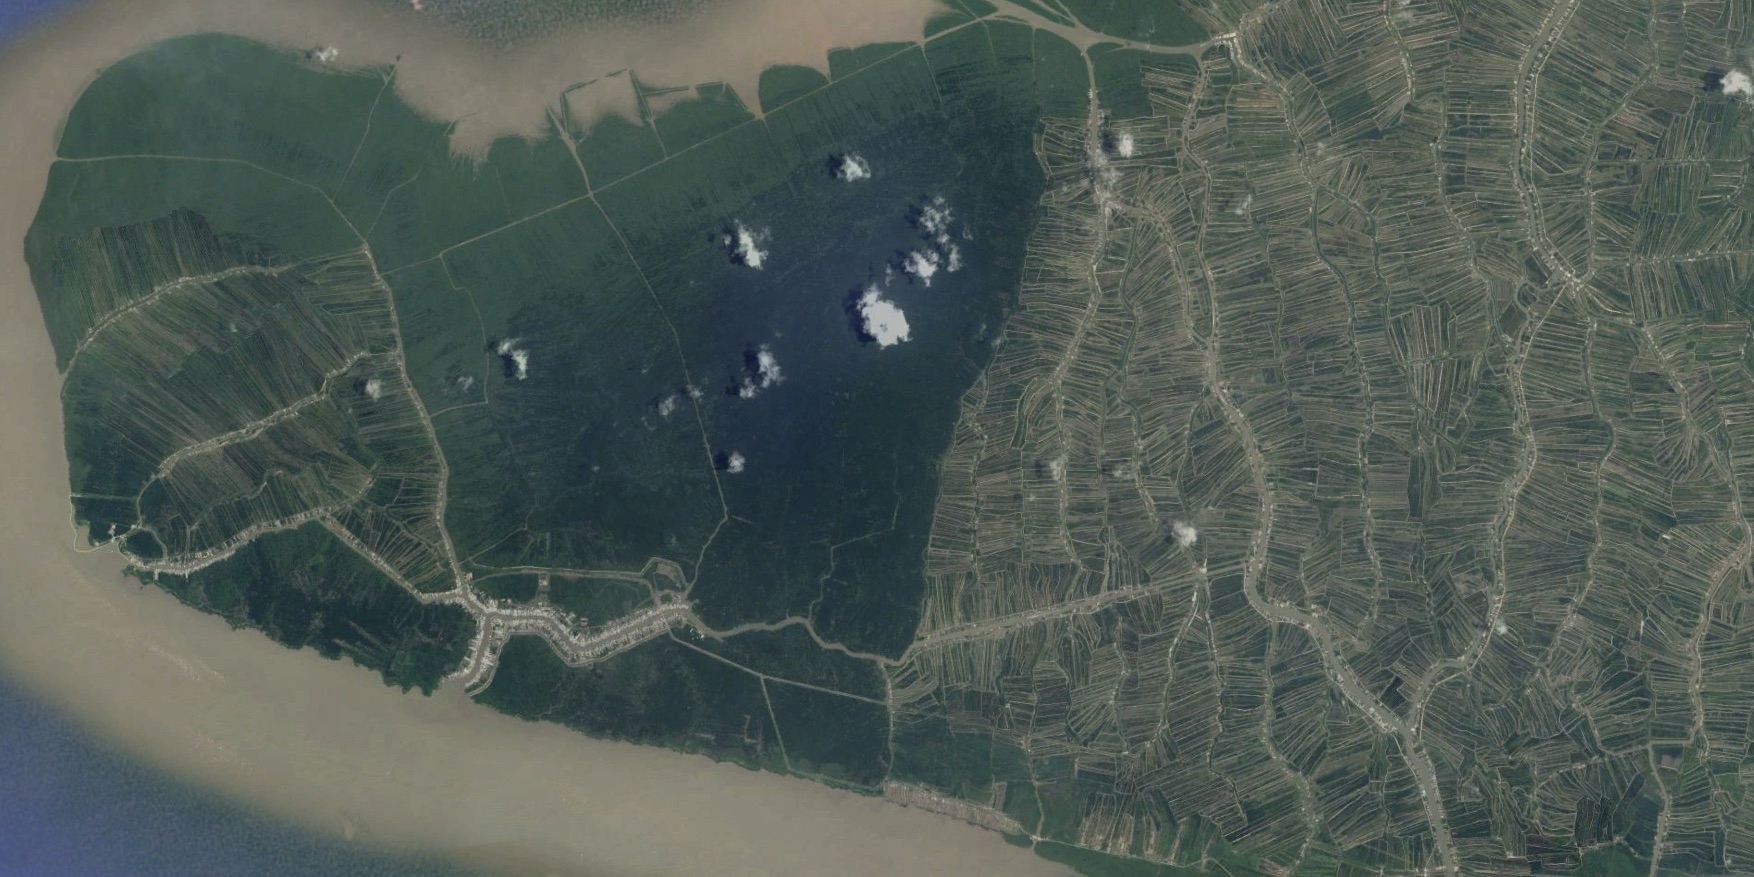 National park abuts plots used for mangrove-shrimp farming areas. Copyright: CNES/Astrium, TerraMetrics, via Google Earth.